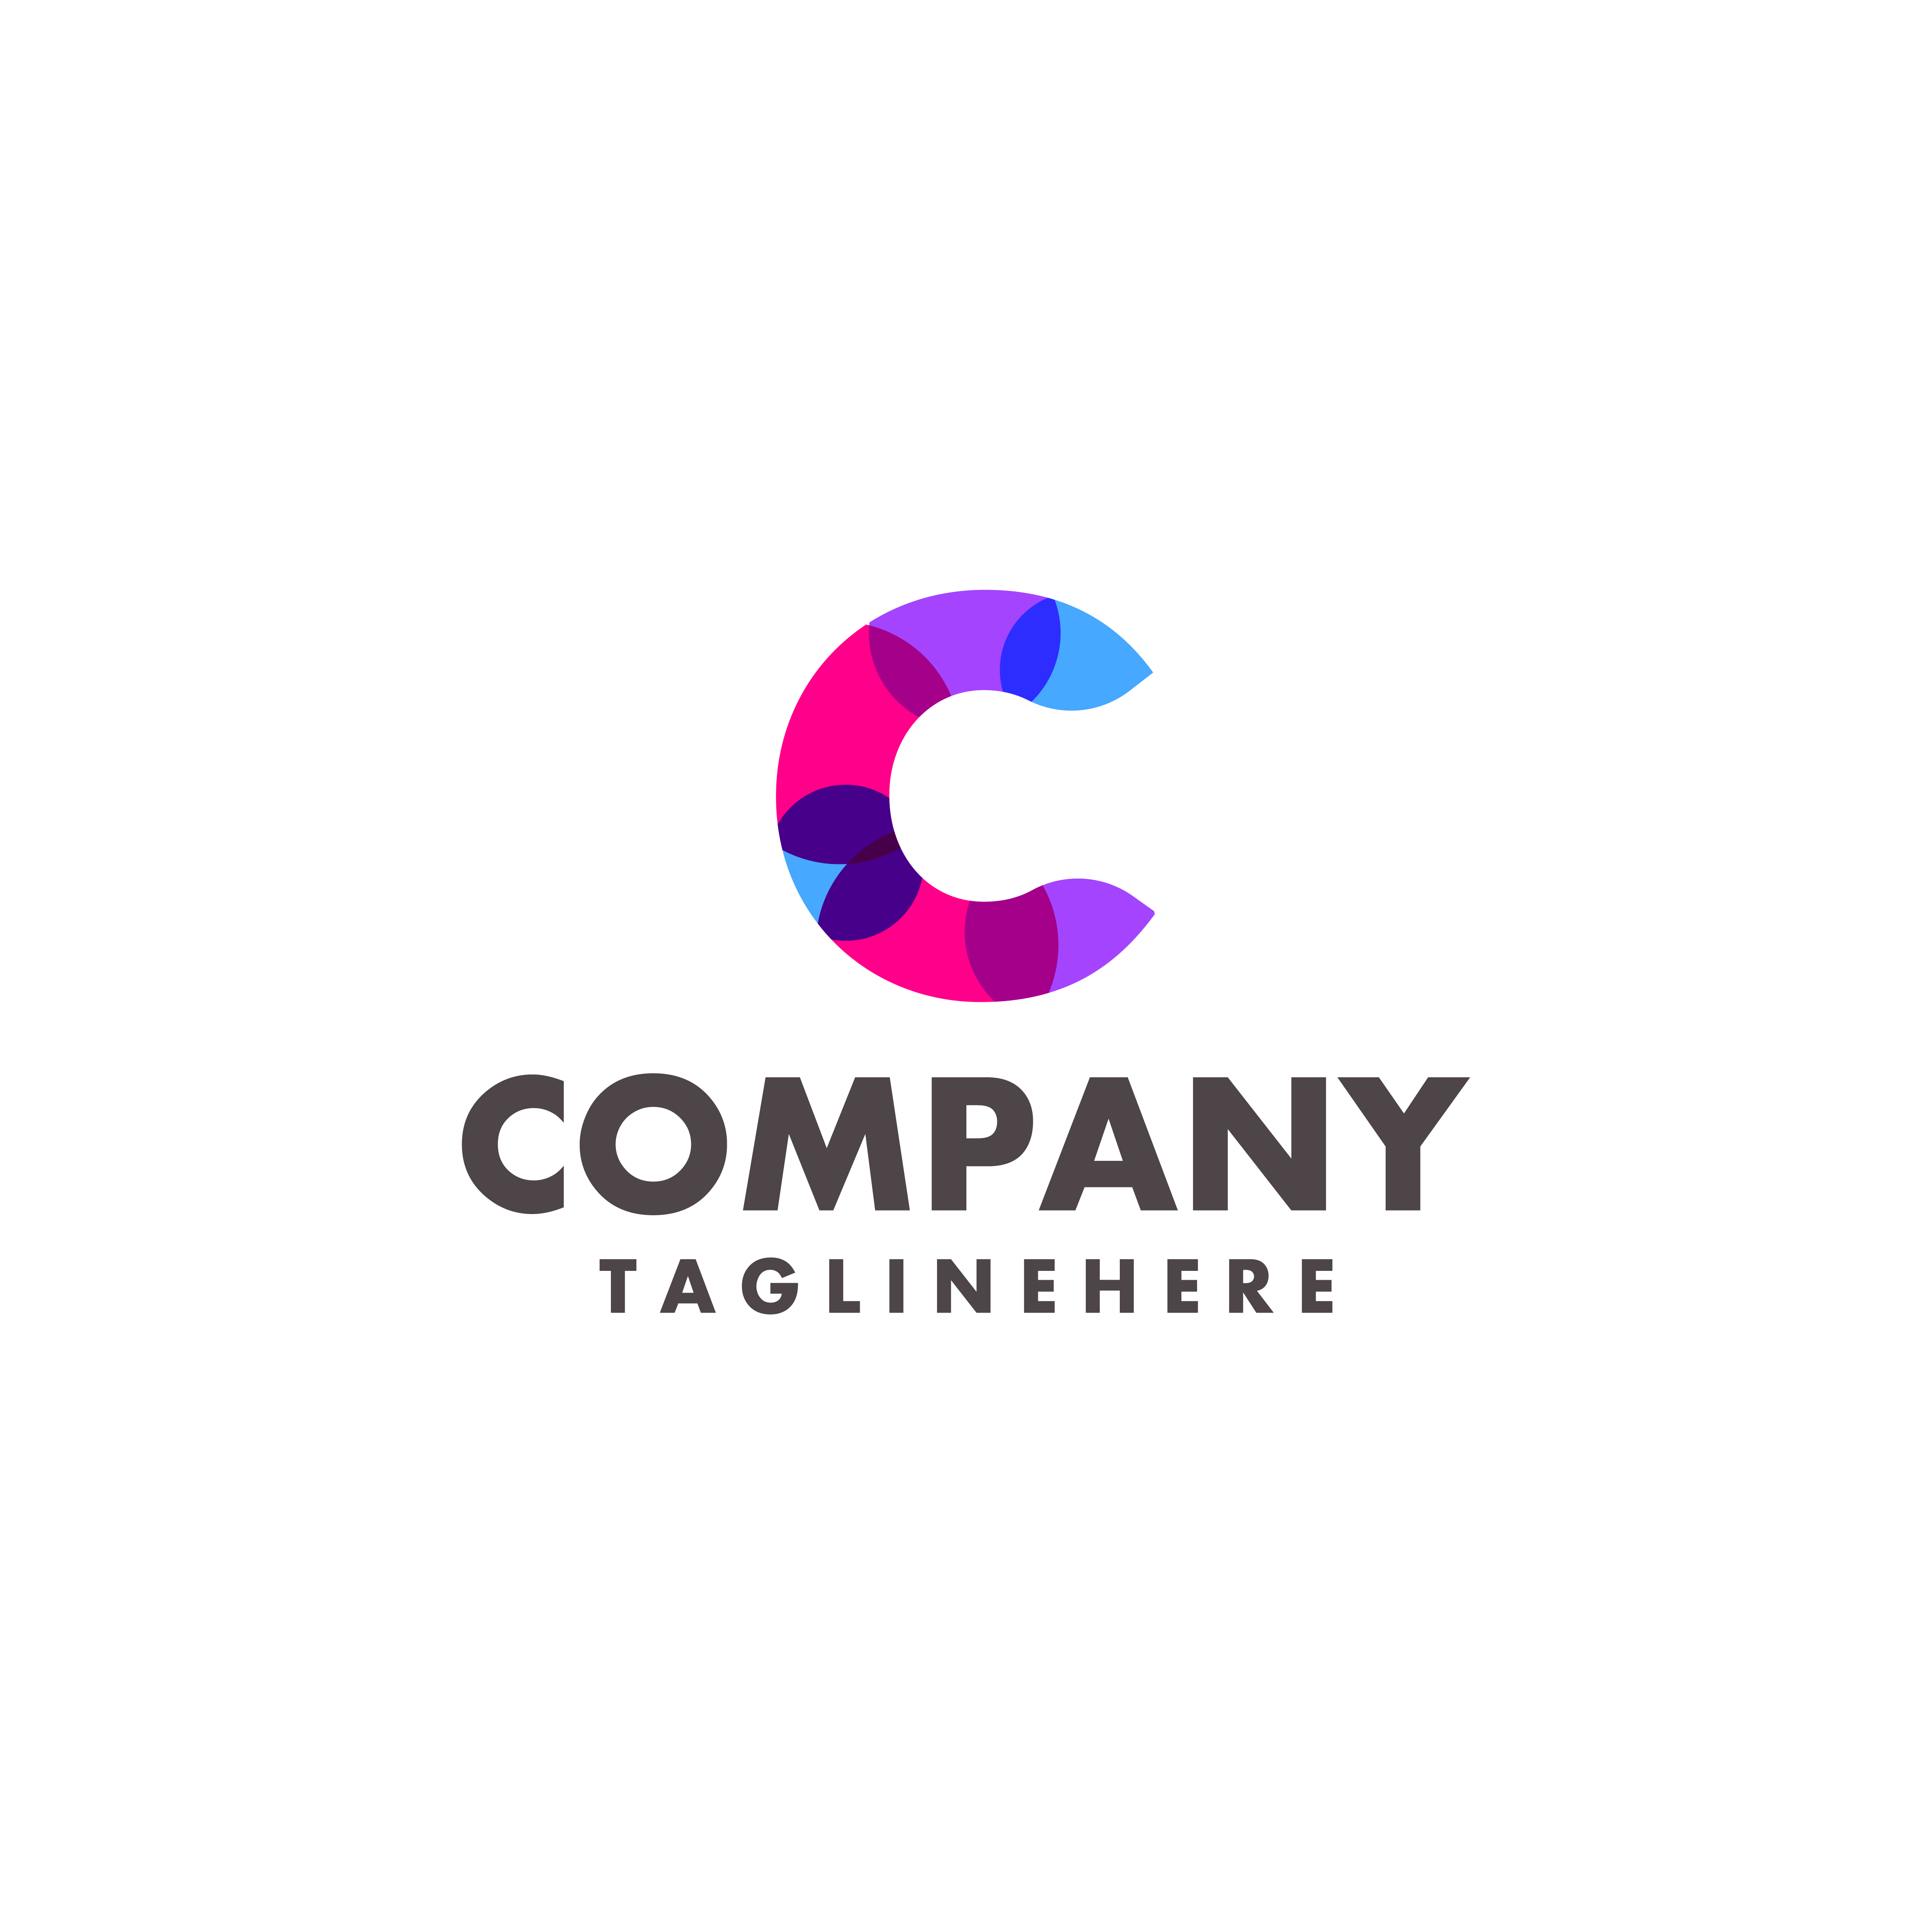 Abstract Colorful Letter C Logo Design For Business